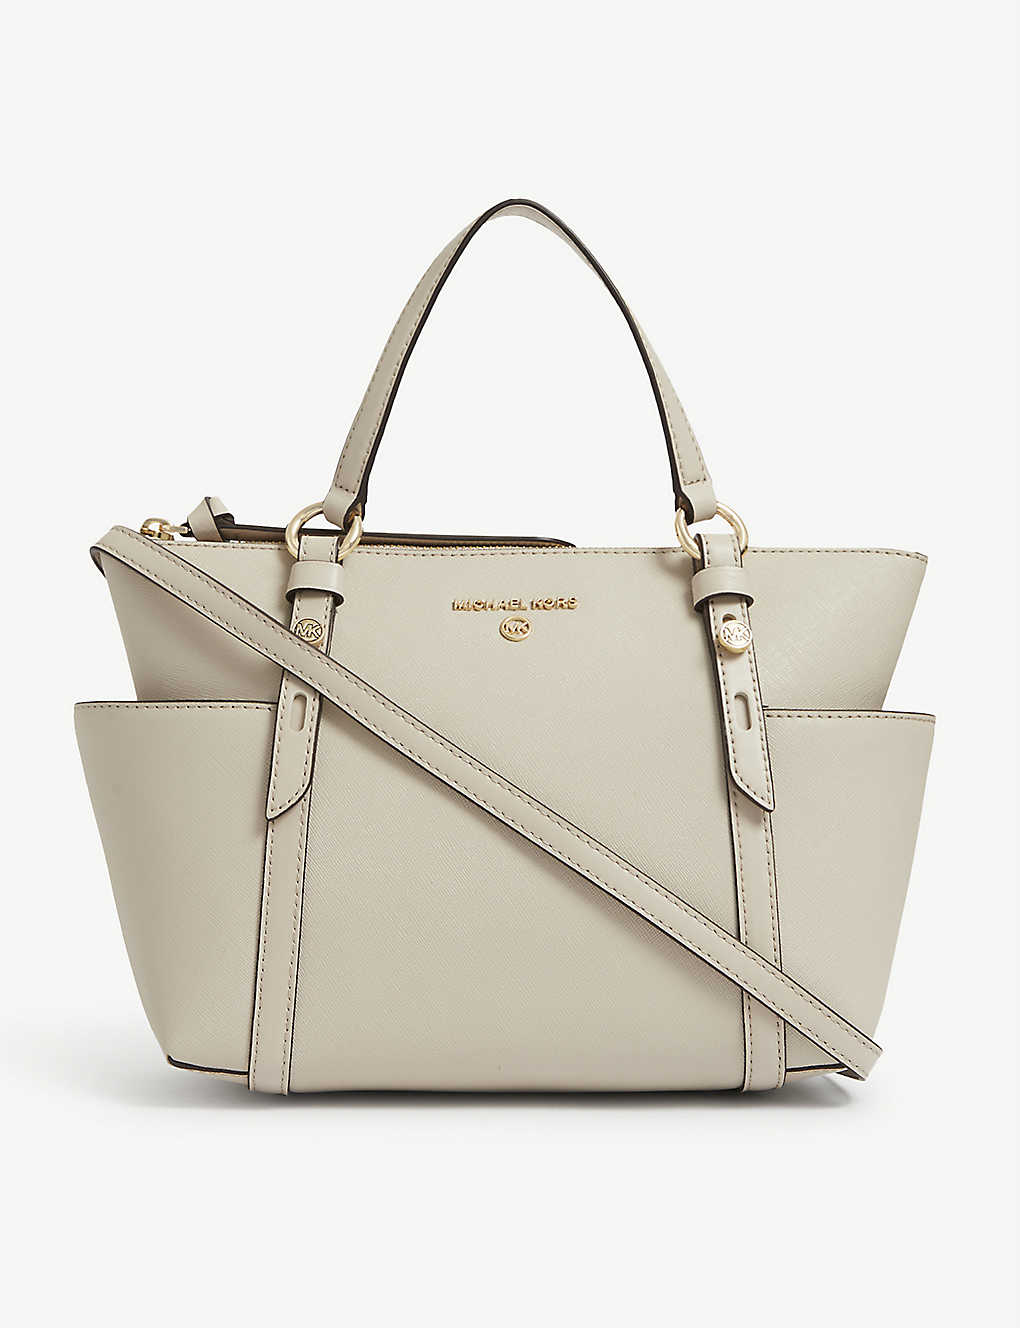 MICHAEL MICHAEL KORS: Nomad leather tote bag